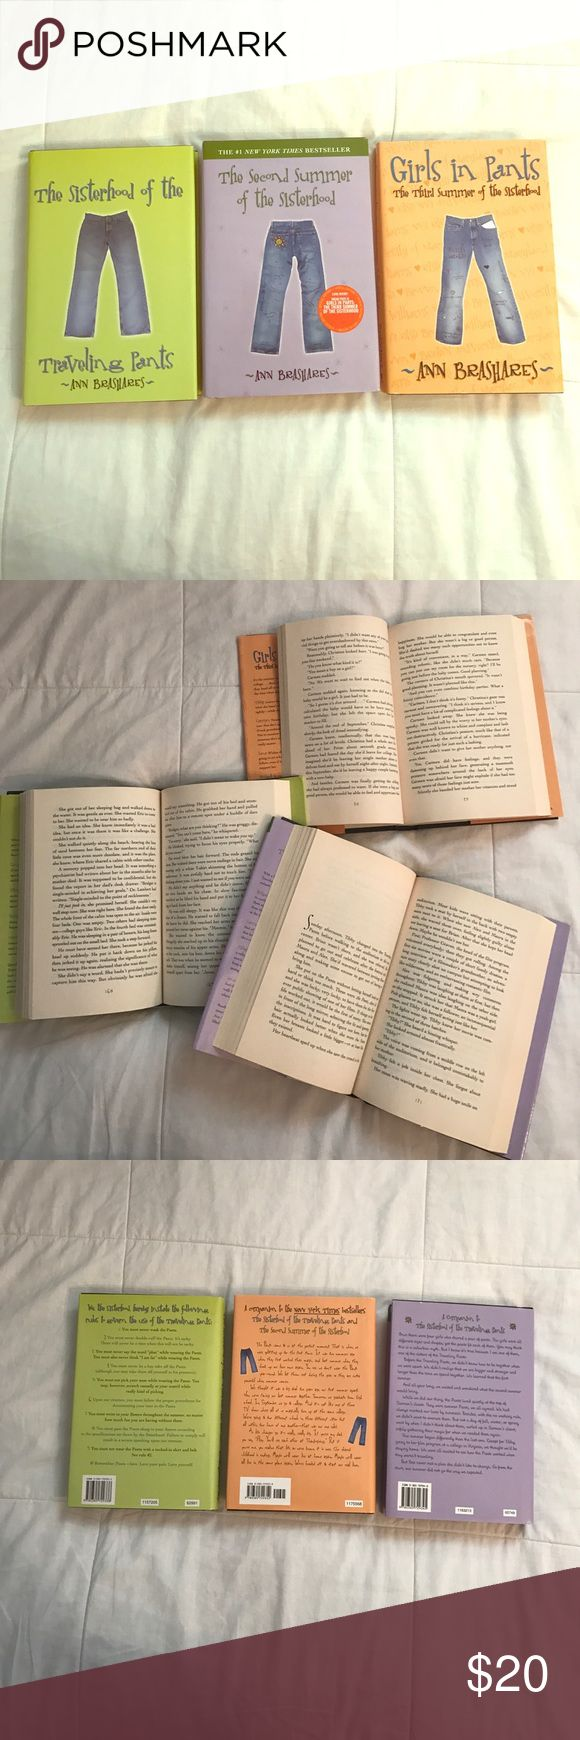 THE SISTERHOOD OF THE TRAVELING PANTS  BOOK SERIES Excellent condition   Loved reading these as a teenager, now they're just collecting dust, would rather them go to someone who will read them ☺ Covers are a little dirty/dusty Other